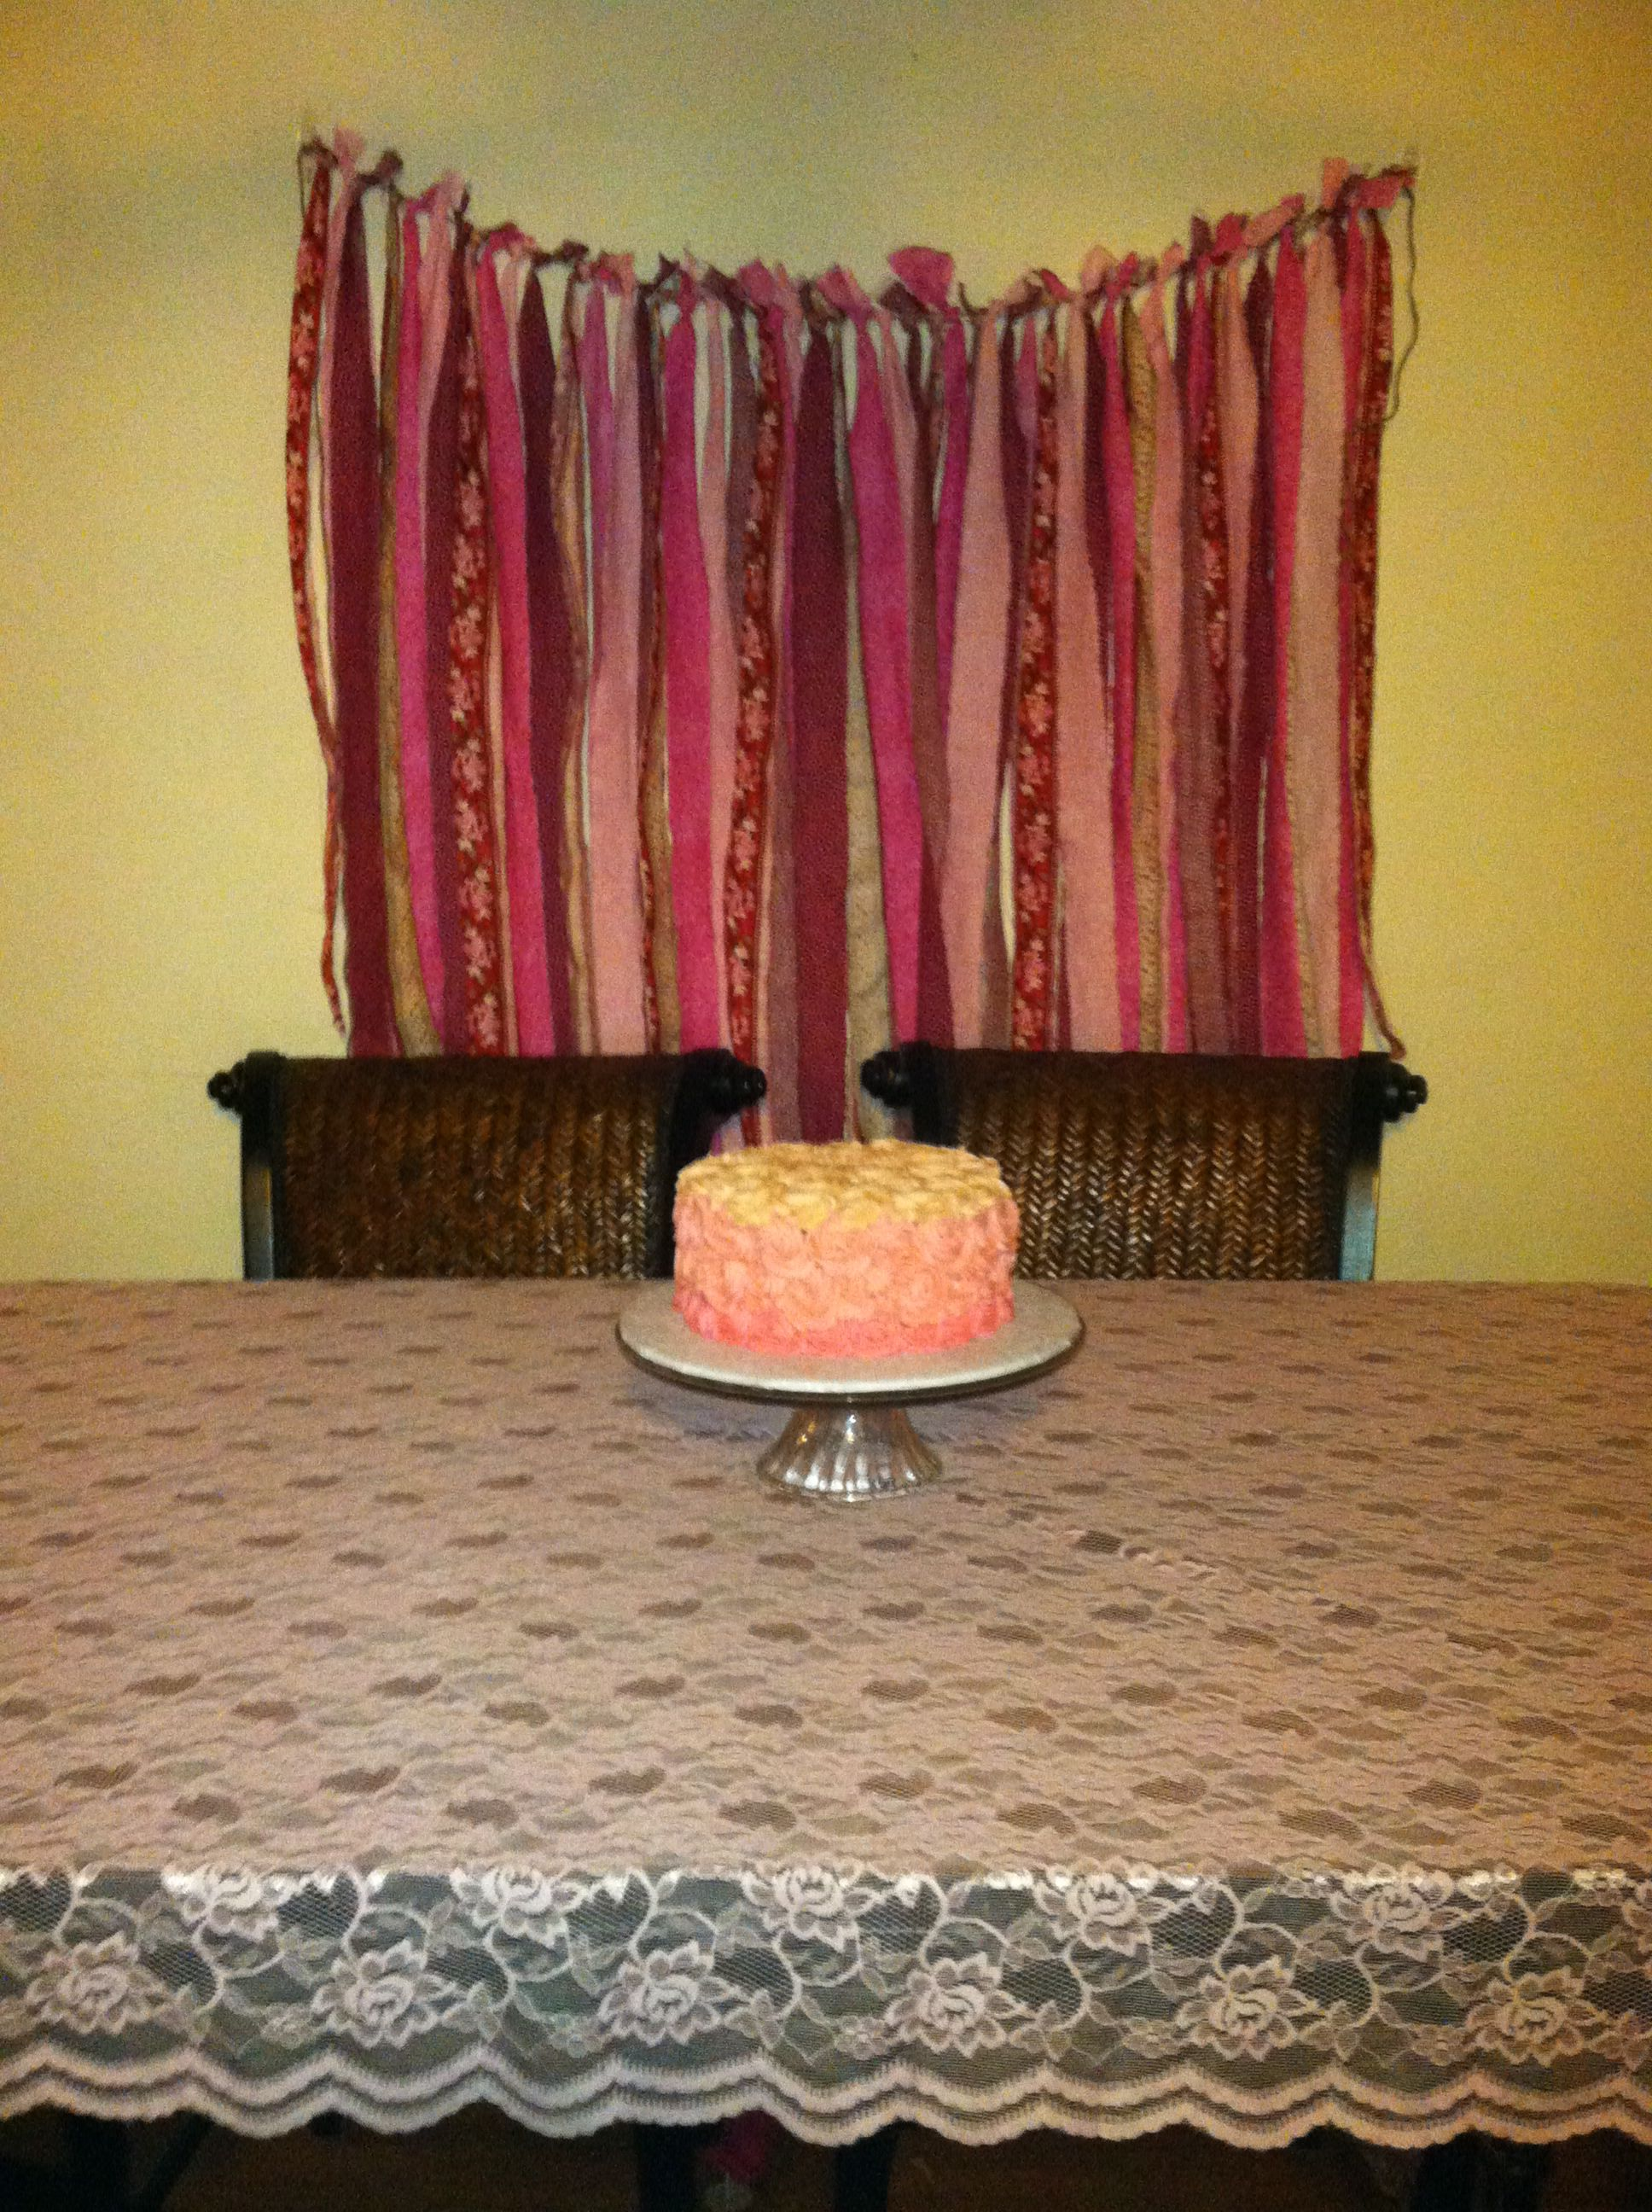 Lilys Cake Made By Chatta Cakes Chattanooga TN Find This Pin And More On Birthday Party Ideas